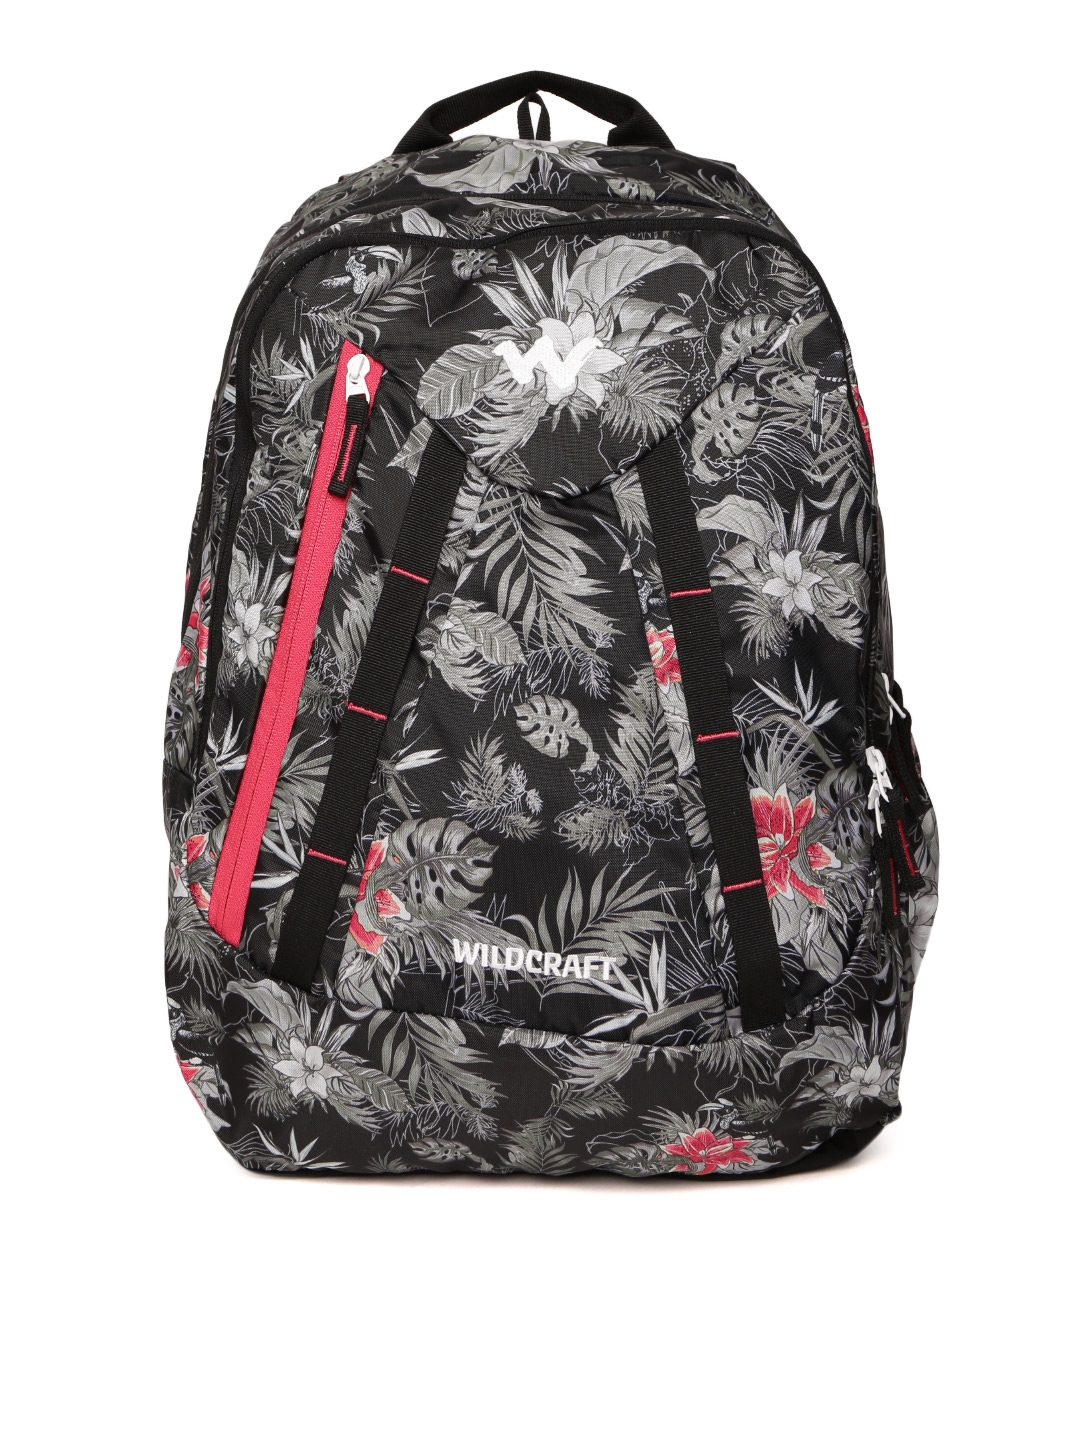 Buy Wildcraft Unisex Black   Grey Floral Print Backpack - Backpacks ... ae5dceaaebd12